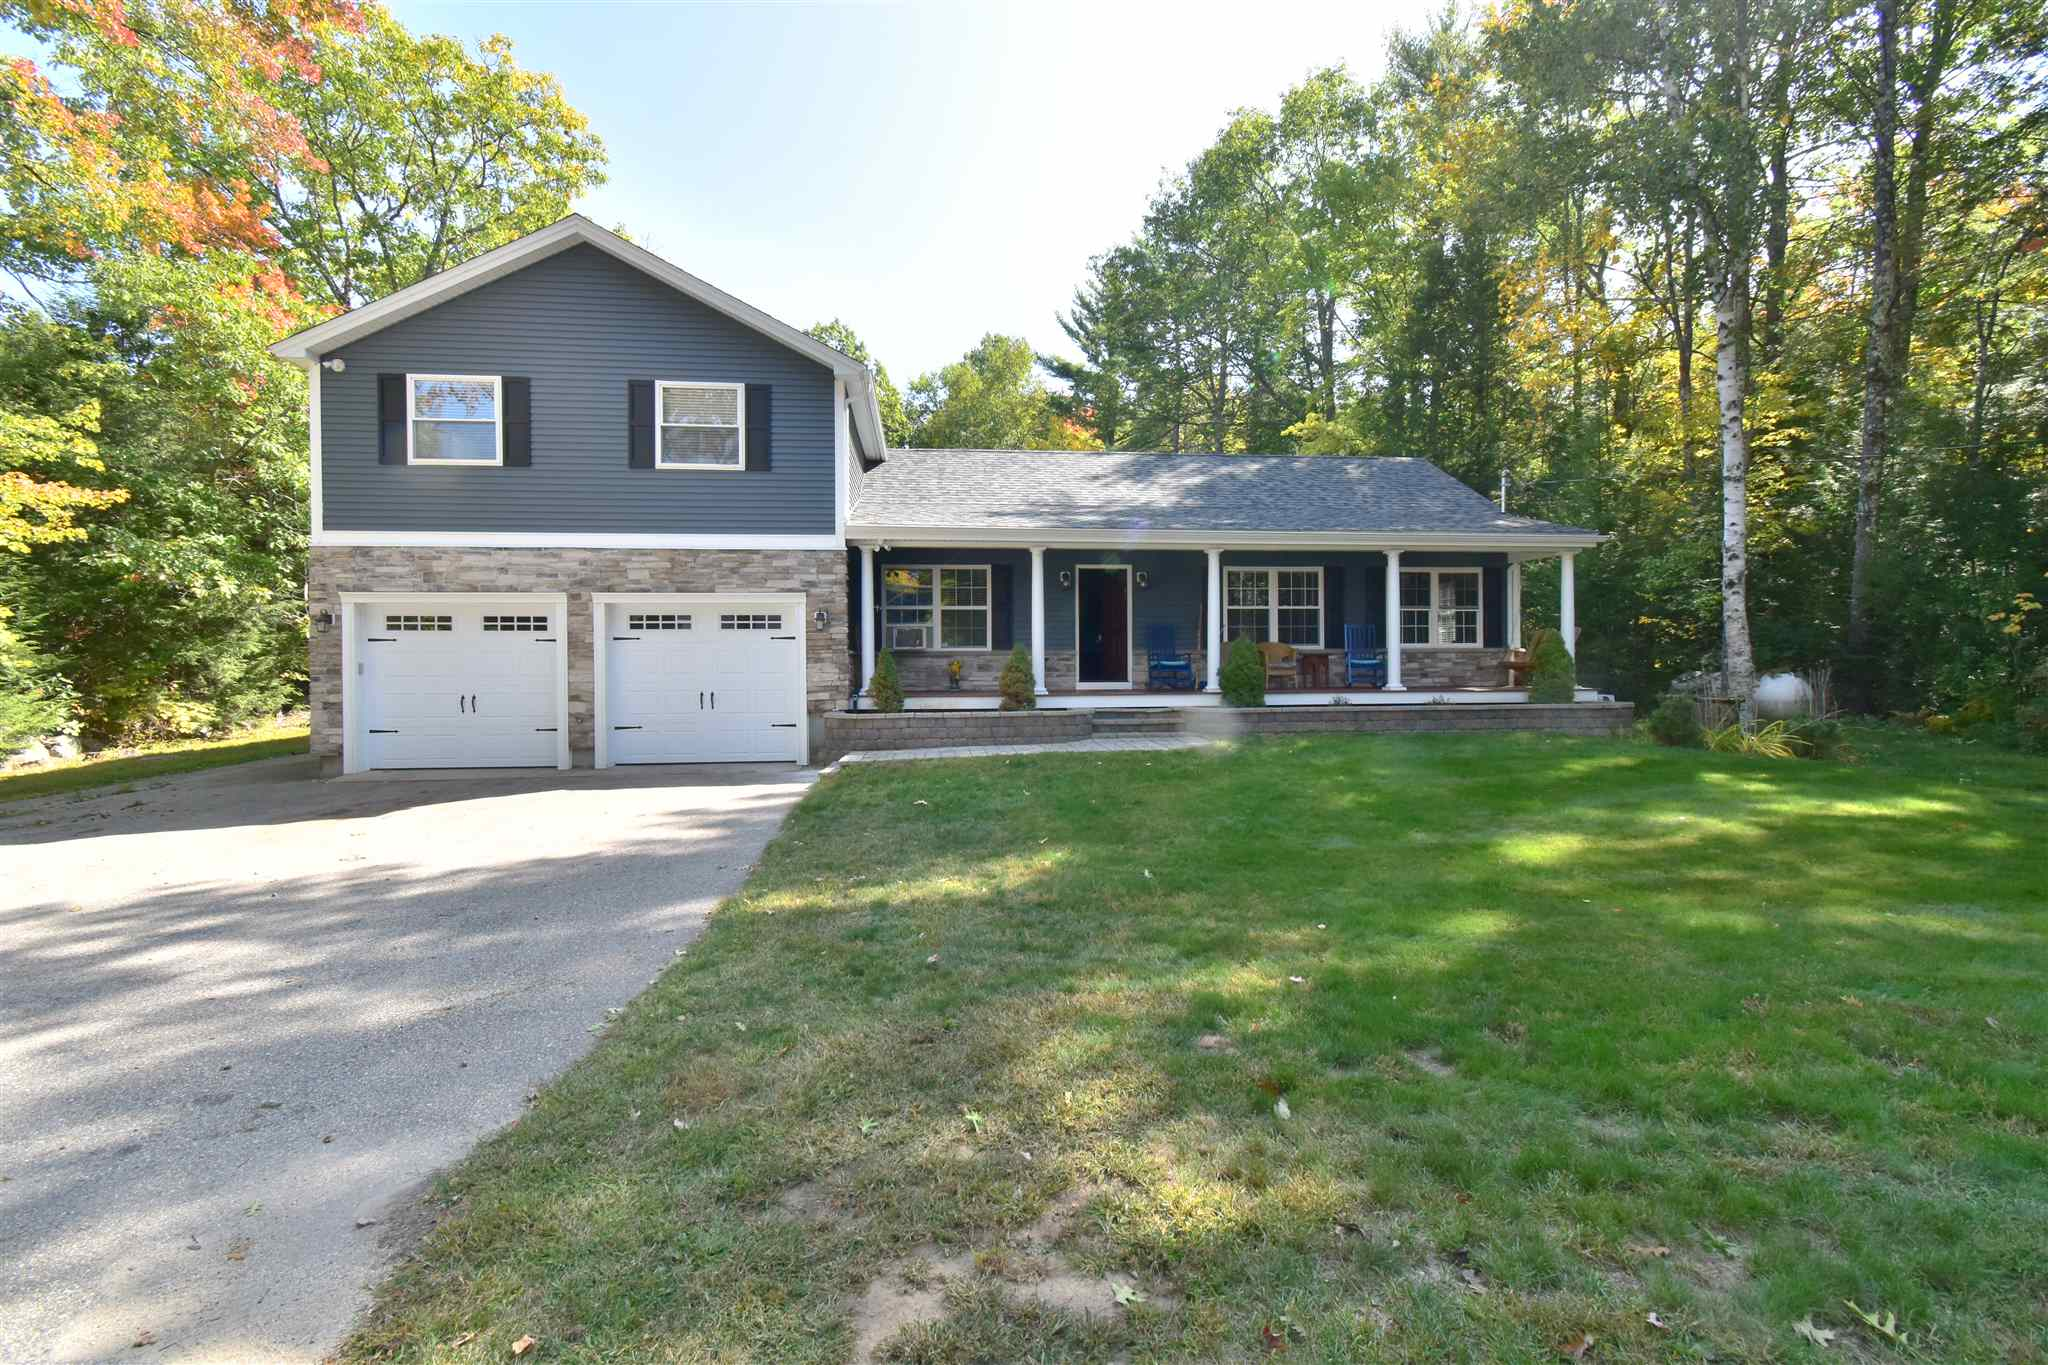 VILLAGE OF MELVIN VILLAGE IN TOWN OF TUFTONBORO NHHomes for sale